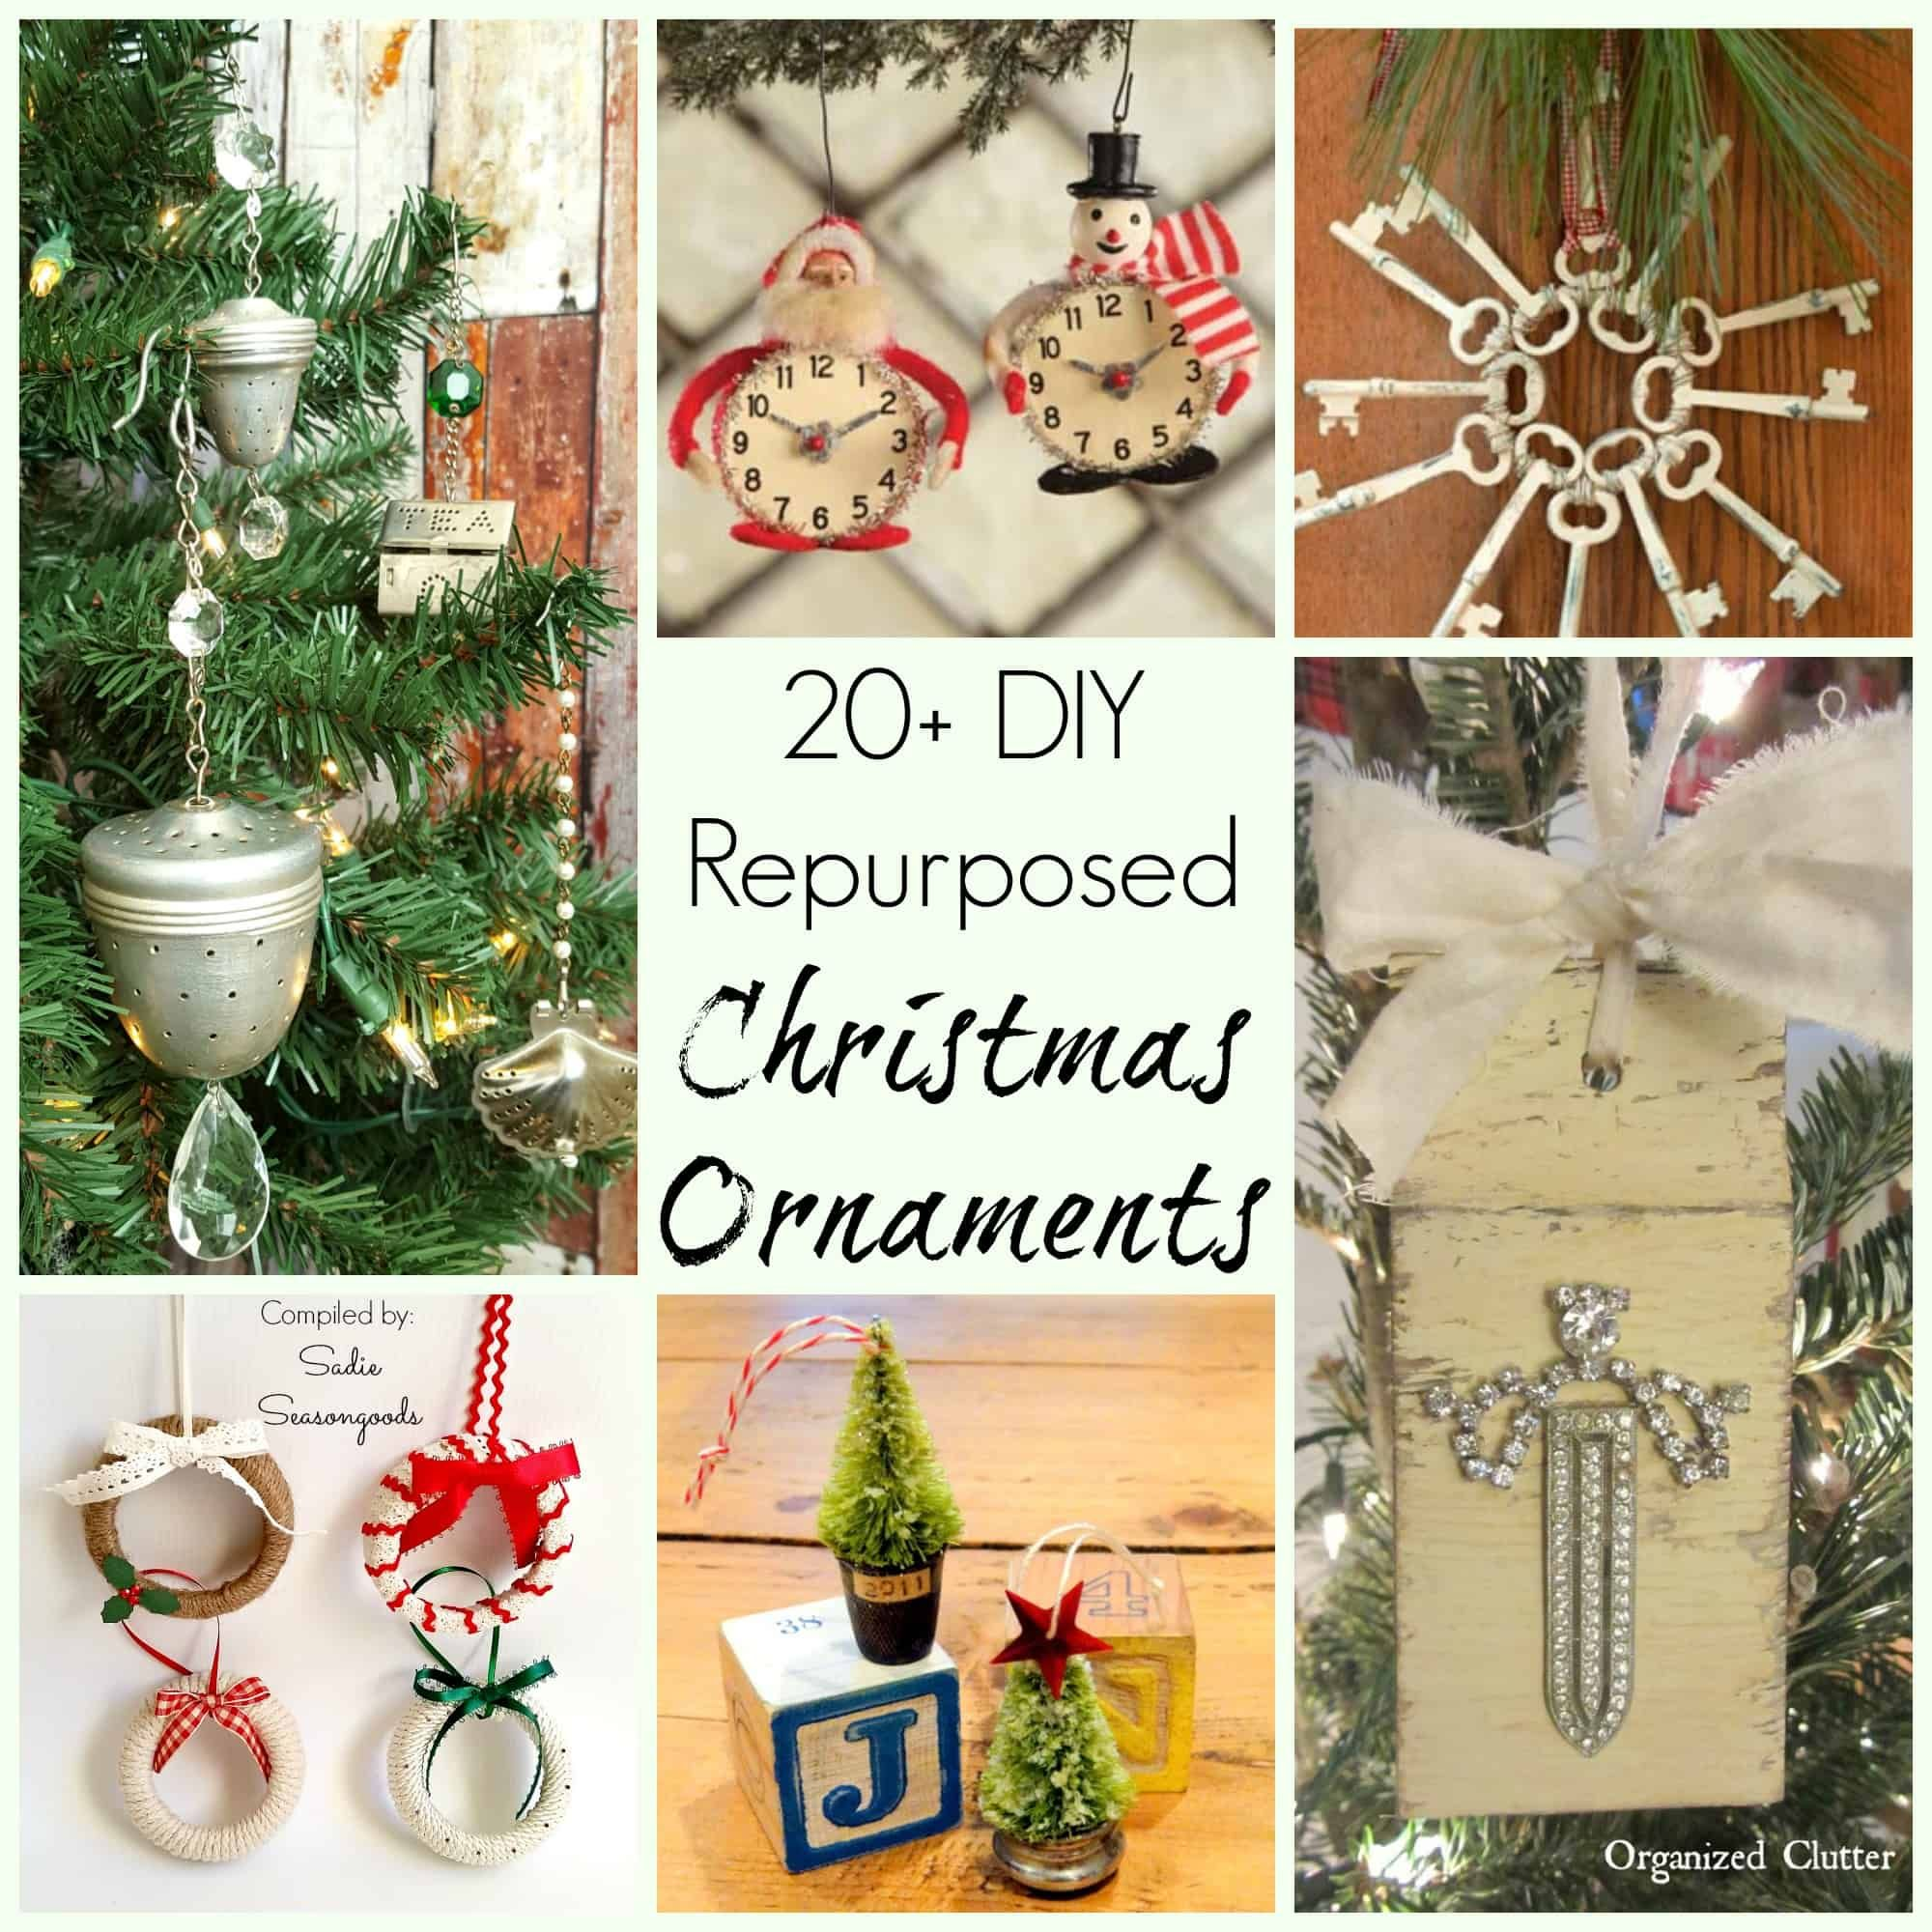 30 Upcycled And Repurposed Ornaments For Your Christmas Tree Diy Xmas Ornaments Yule Crafts Christmas Crafts